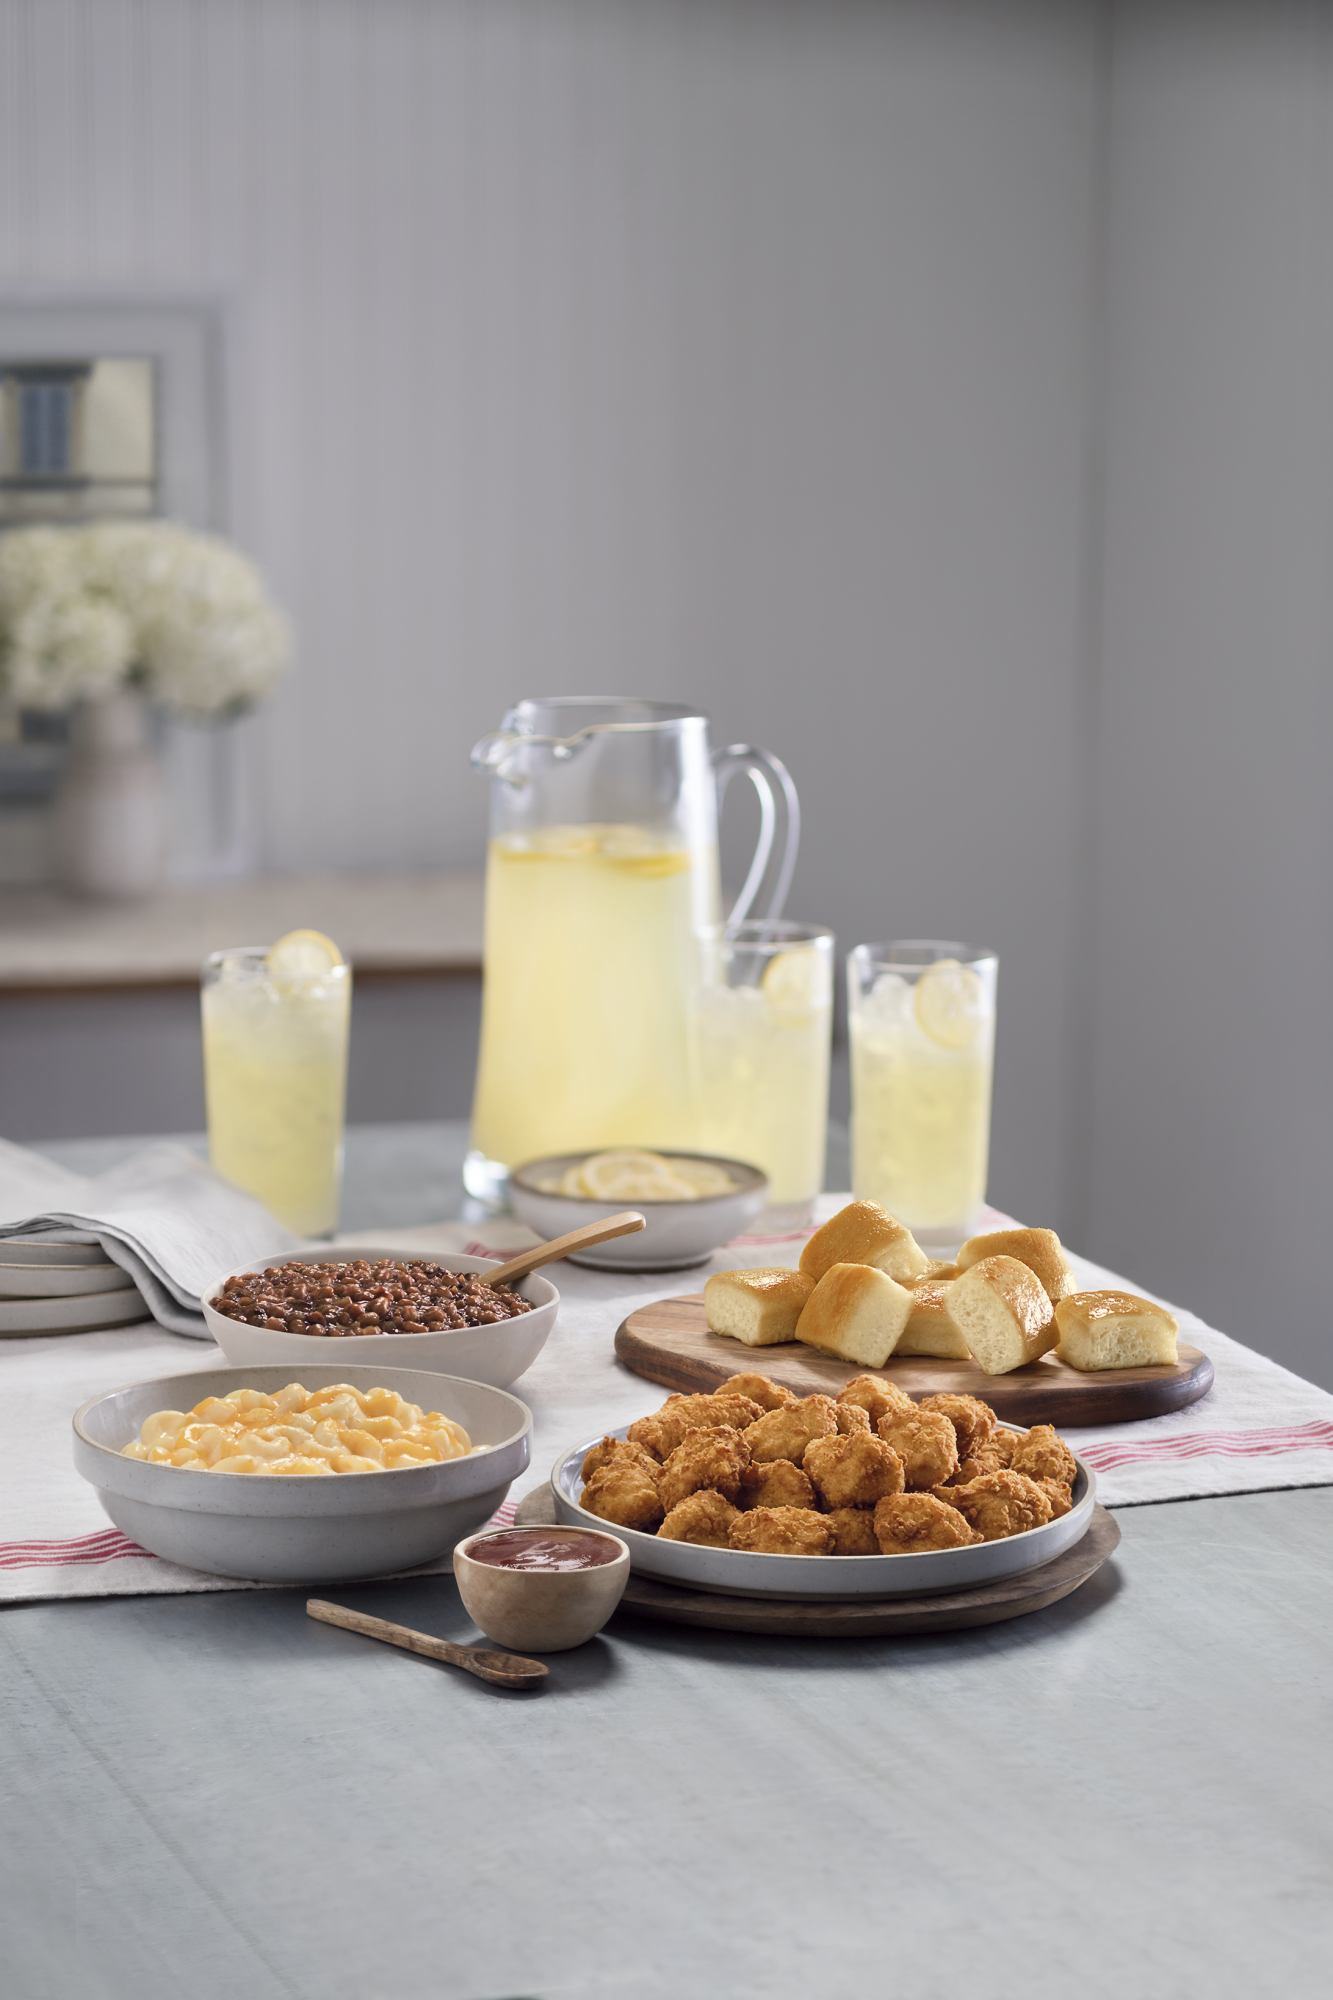 chick fil a family style meals